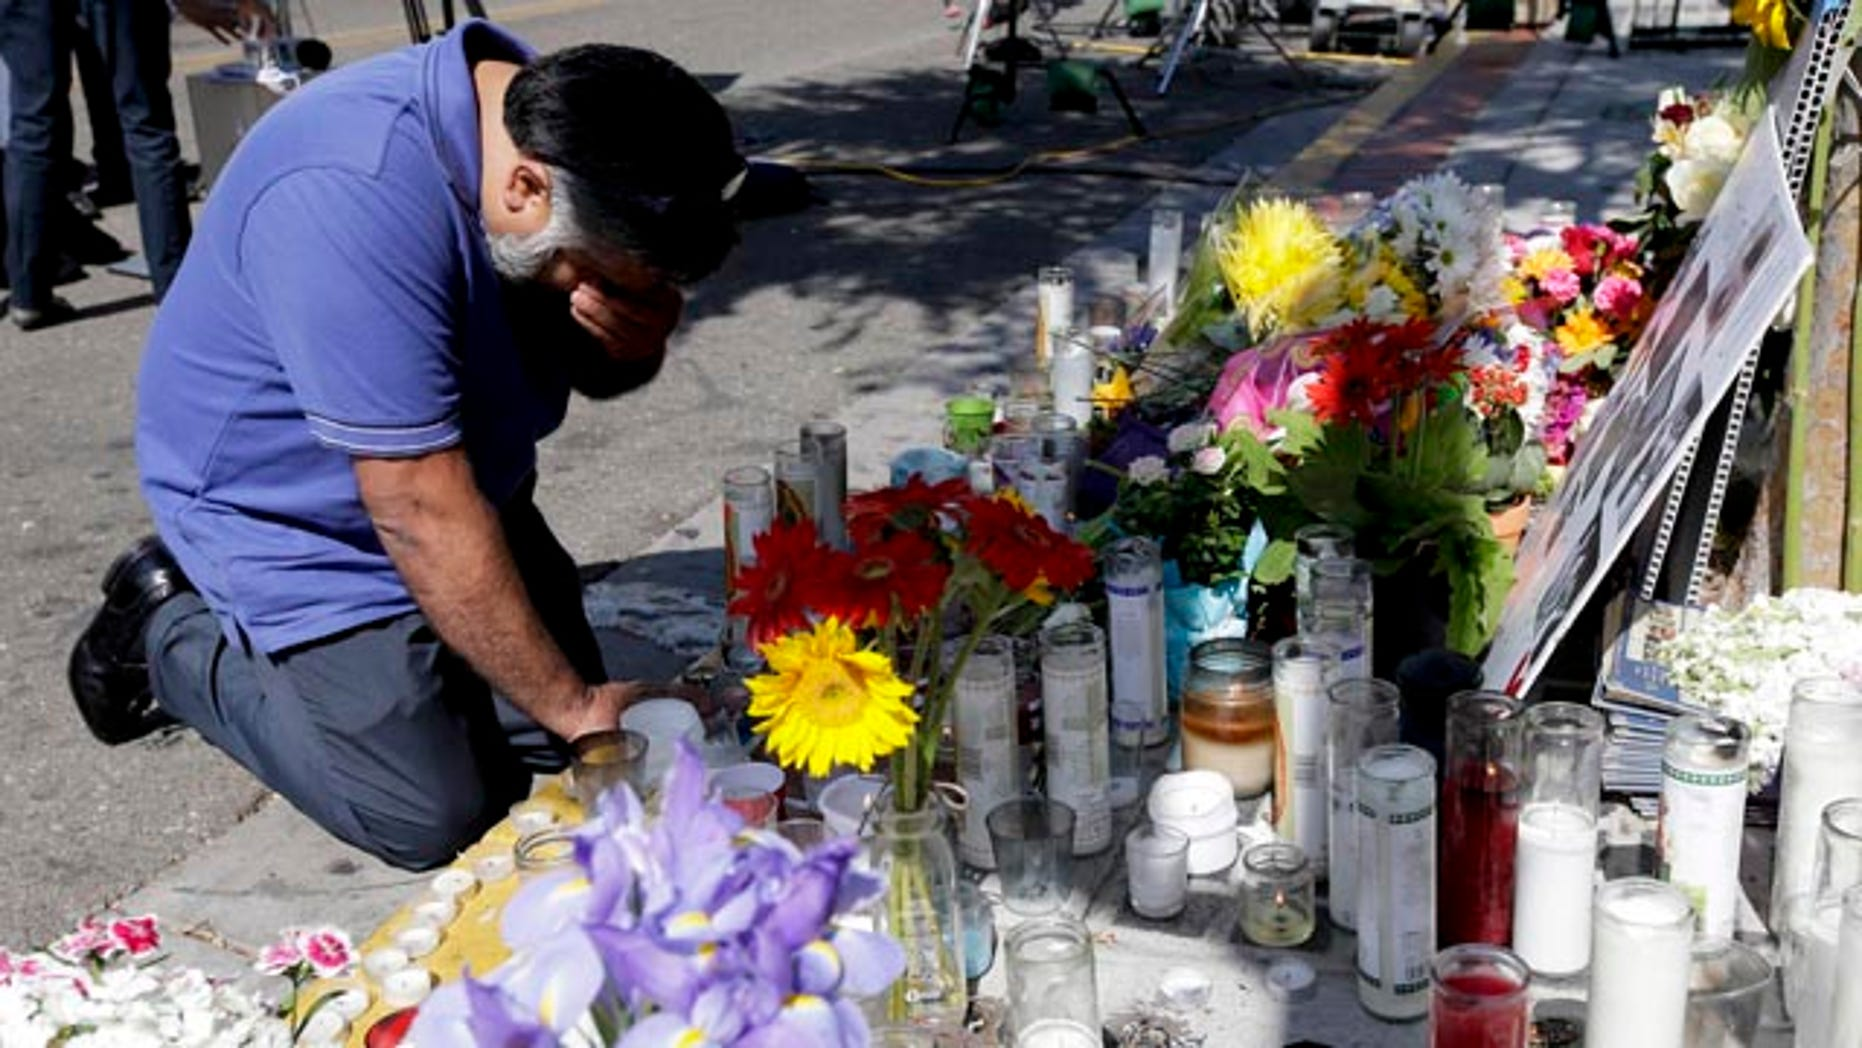 May 25, 2014: Jose Cardoso pays his respects at a makeshift memorial in front of the IV Deli Mart, where part of Friday night's mass shooting took place.